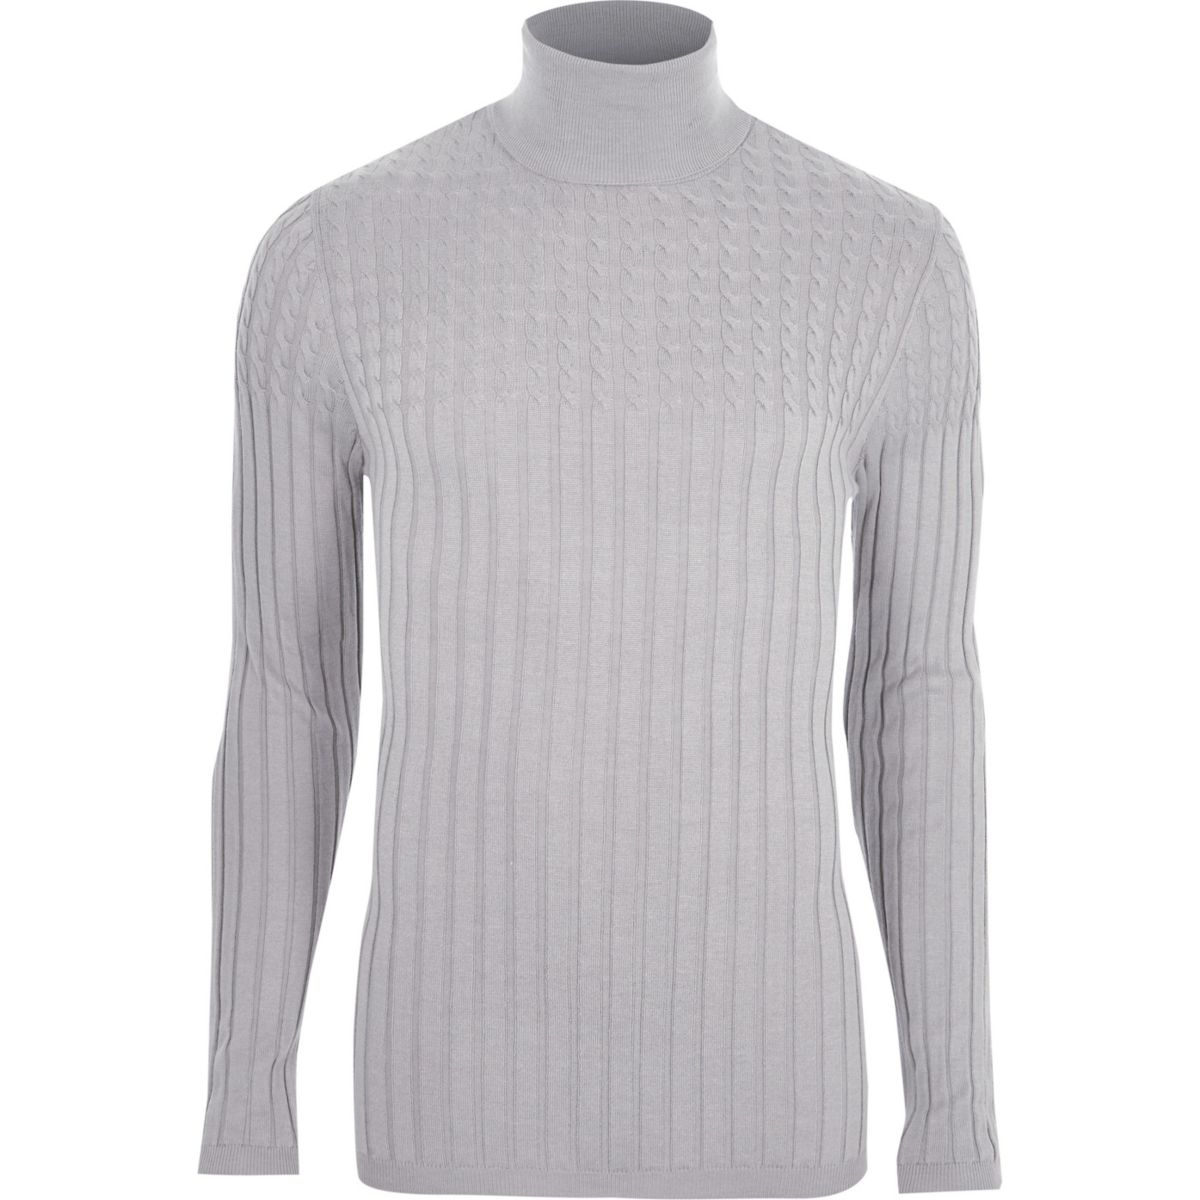 Grey roll neck cable knit muscle fit jumper